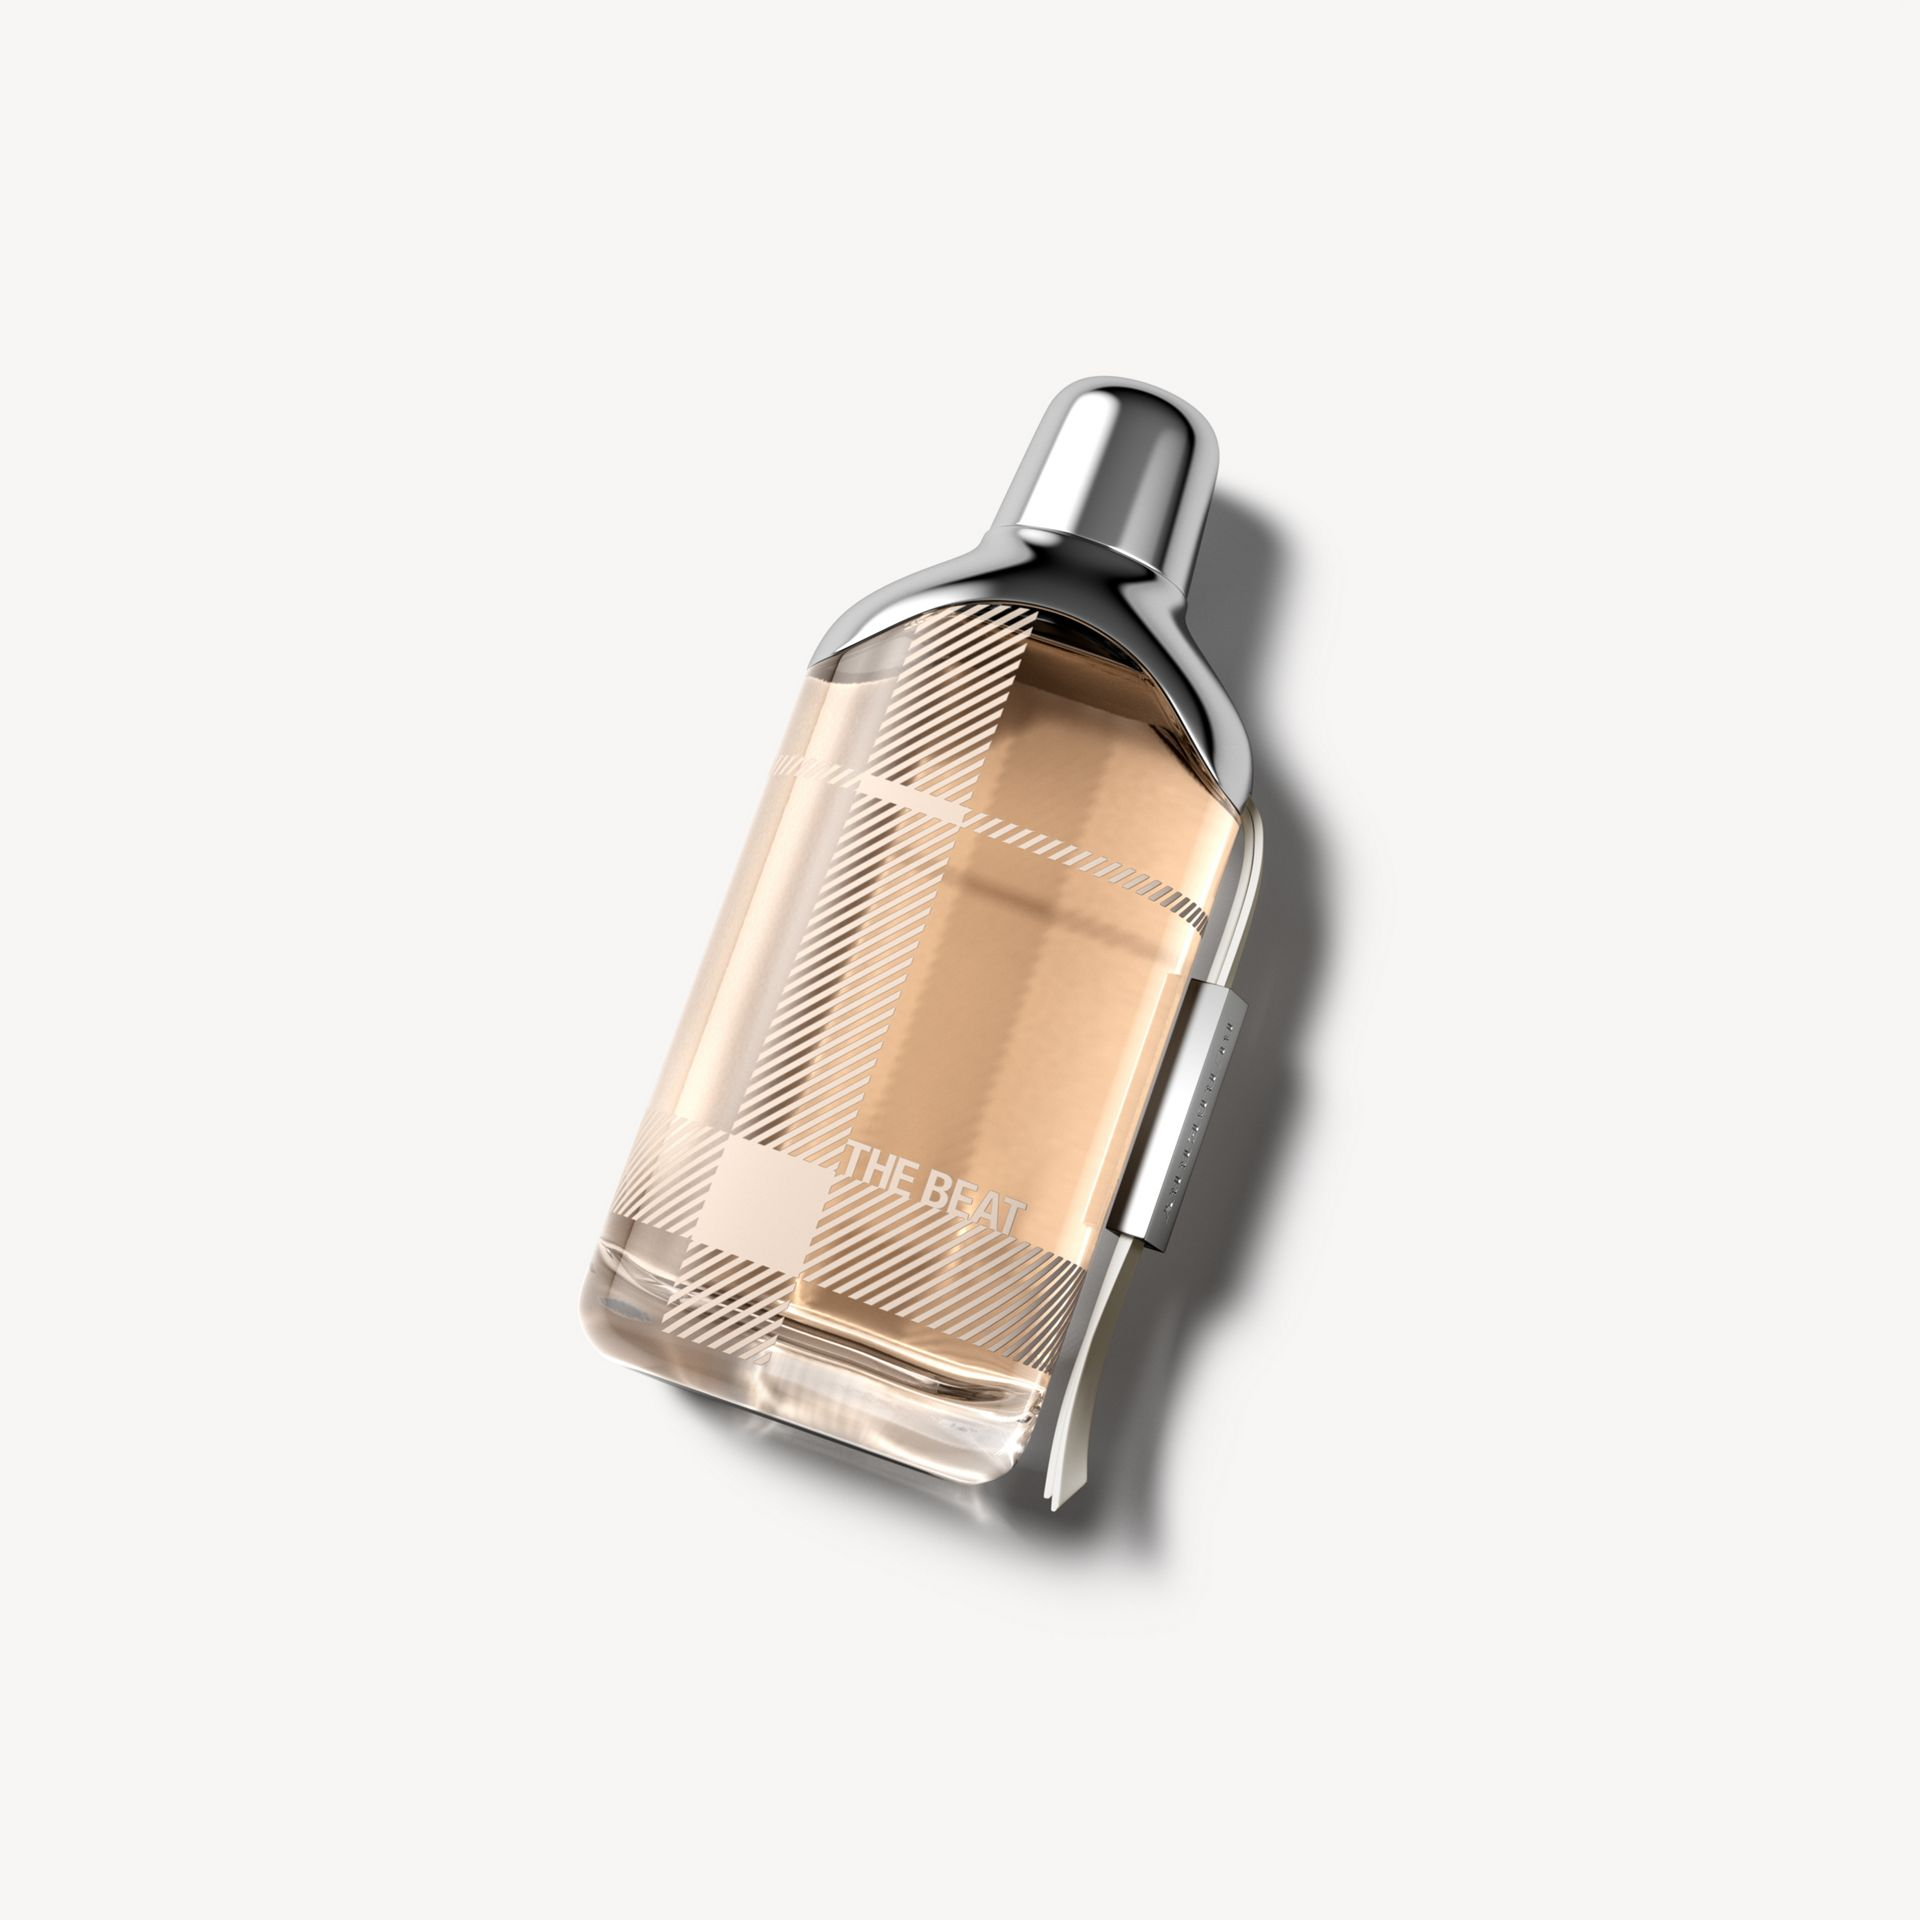 Burberry The Beat Eau de Parfum 75ml - Women | Burberry - gallery image 1